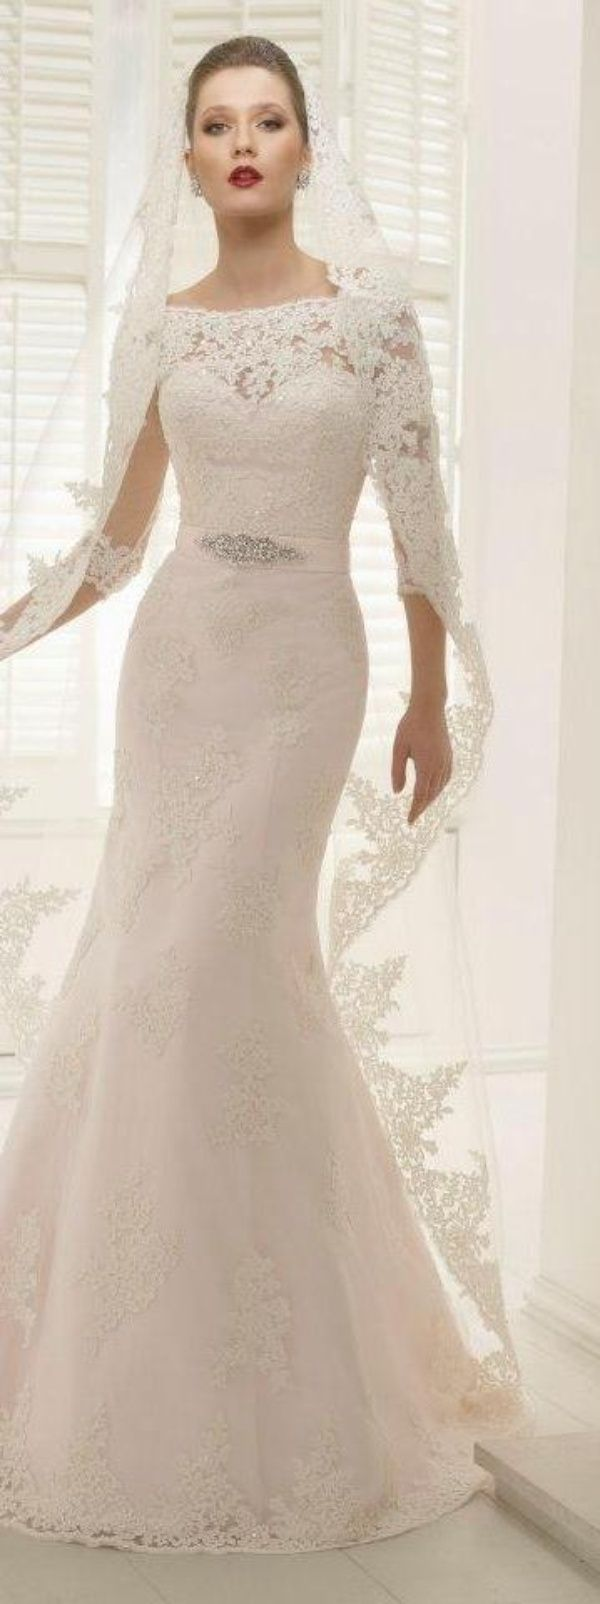 White and Gold Wedding. Sweetheart Neckline, Lace Trumpet Wedding Dress. GOWNS OF ELEGANCE - Bridal